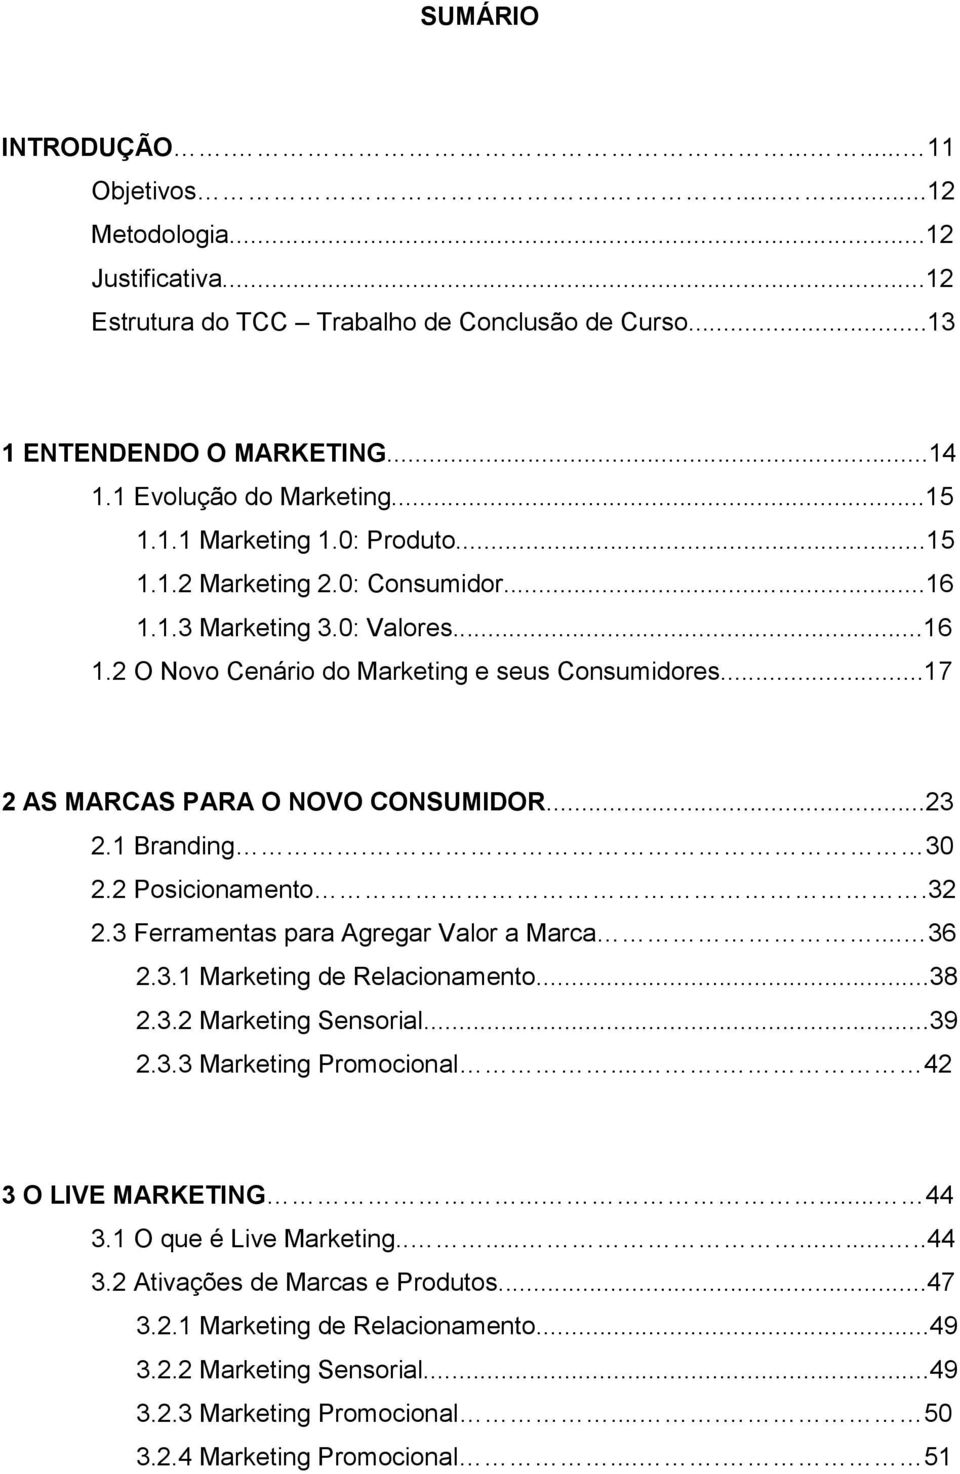 1 Branding. 30 2.2 Posicionamento.32 2.3 Ferramentas para Agregar Valor a Marca... 36 2.3.1 Marketing de Relacionamento...38 2.3.2 Marketing Sensorial...39 2.3.3 Marketing Promocional.